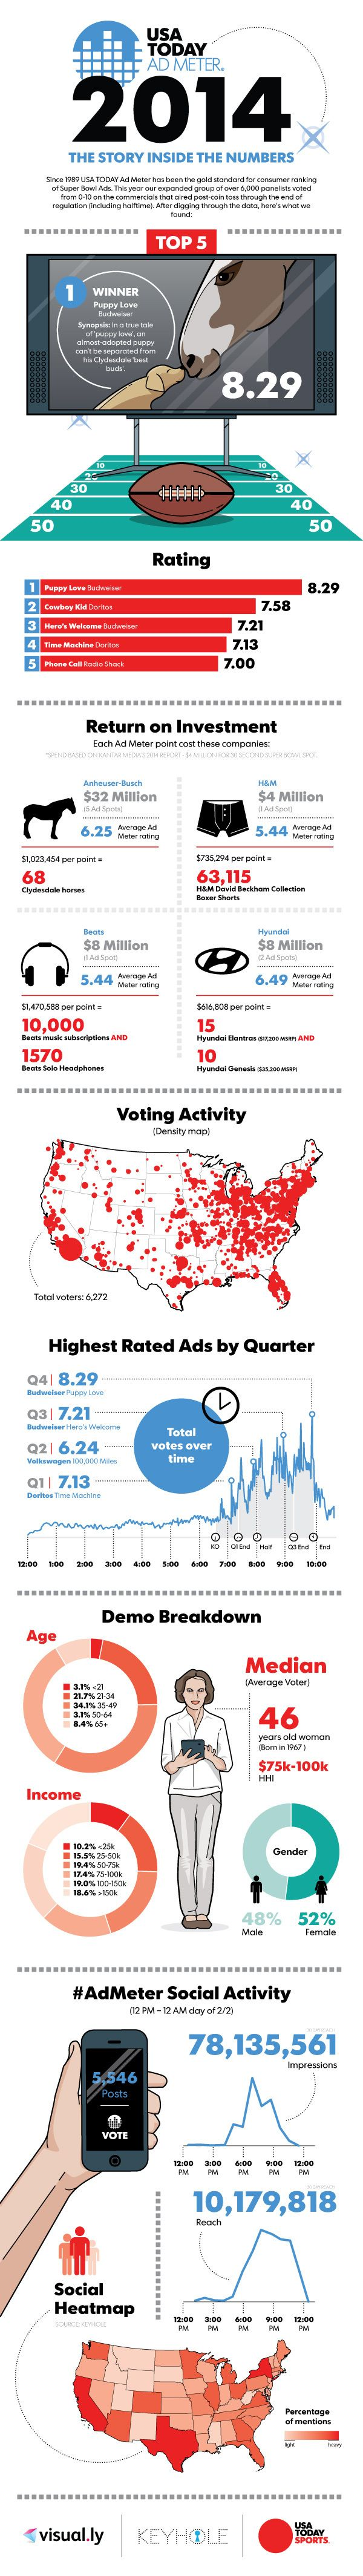 How this year's Super Bowl commercials performed in one big infographic #sportbiz #SB48